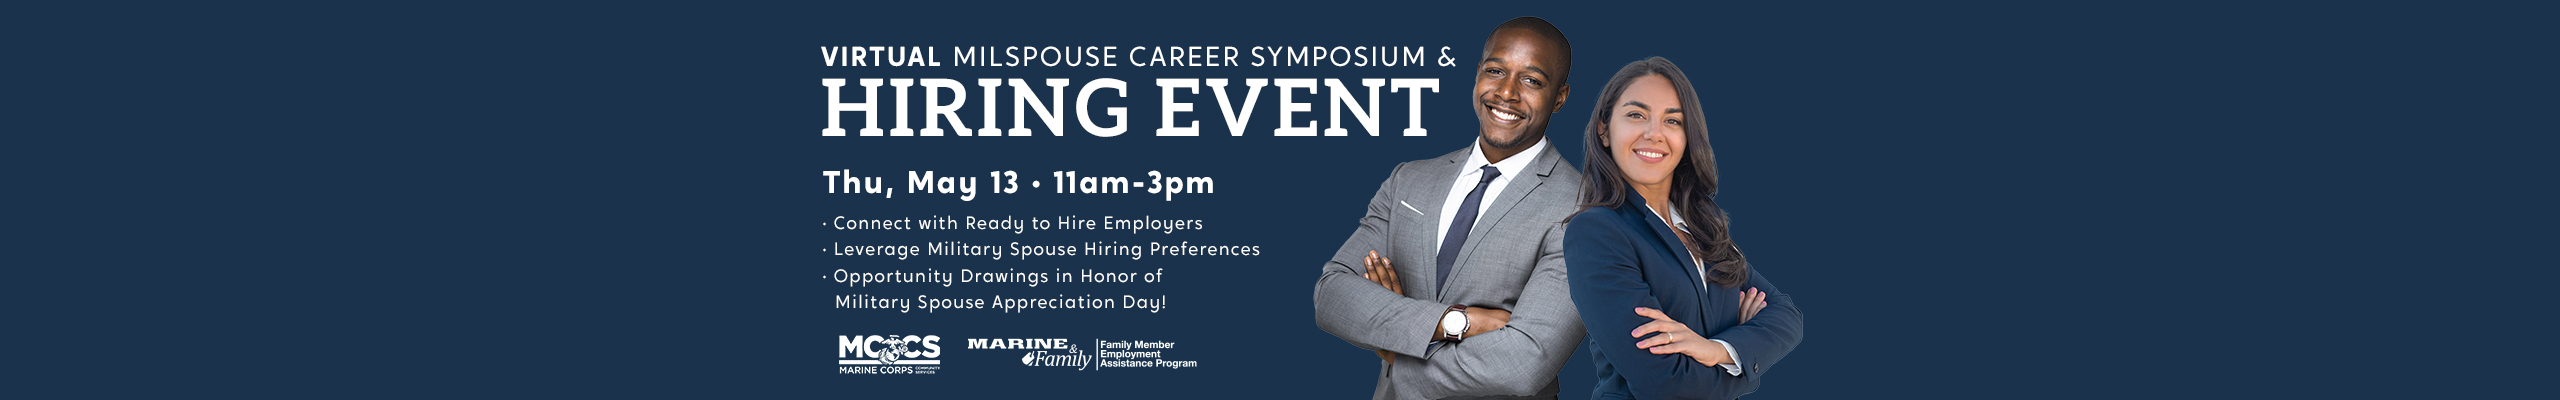 Virtual Military Spouse Career Symposium & Hiring Event – May 13: 11am-3pm